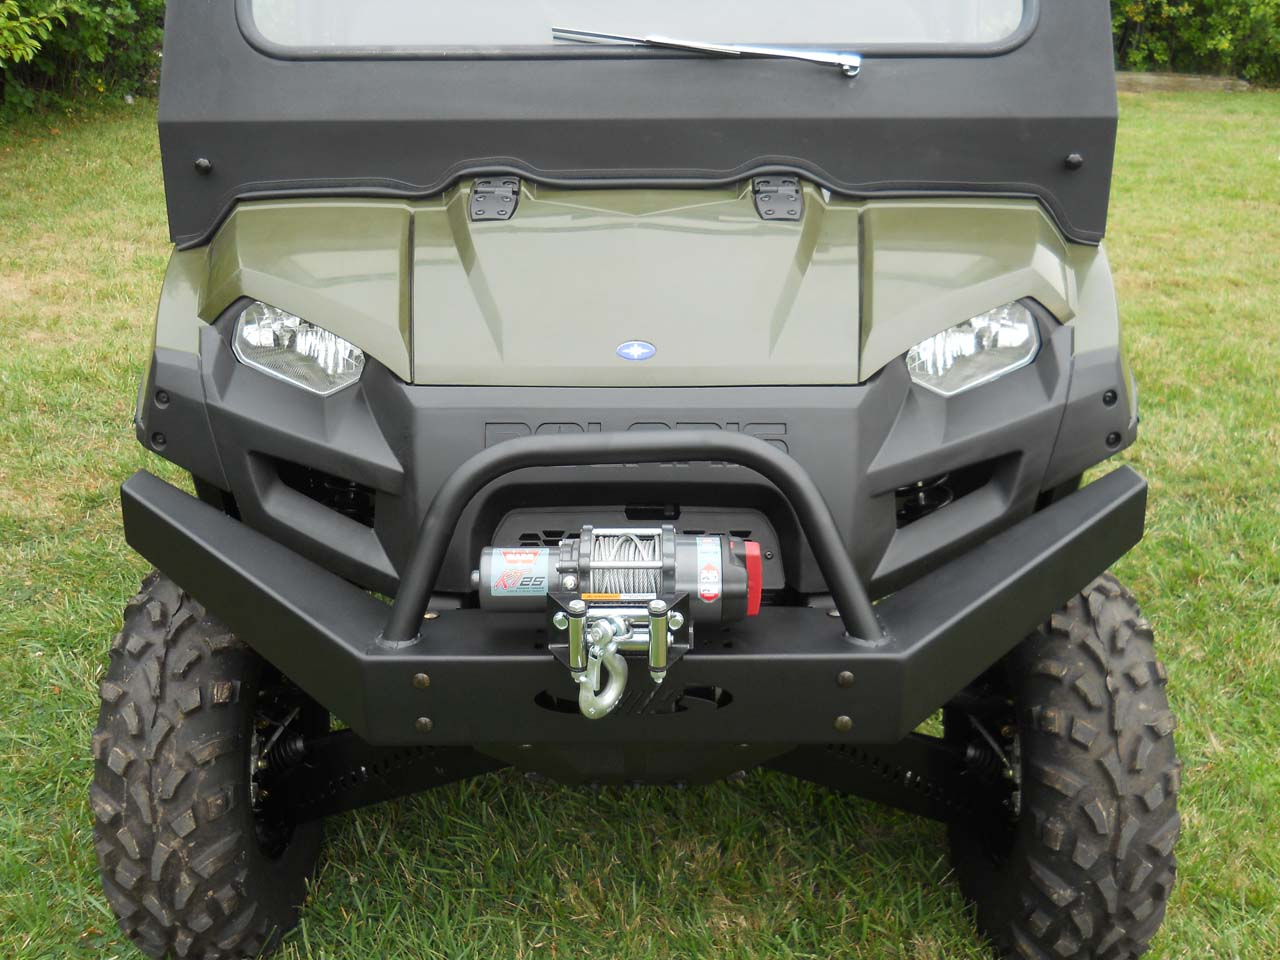 Extreme Metal Products Releases The Front Bumper For 2011 Polaris Sportsman Wiring Diagram Vendor2010emp Ranger Xpbumper Winch